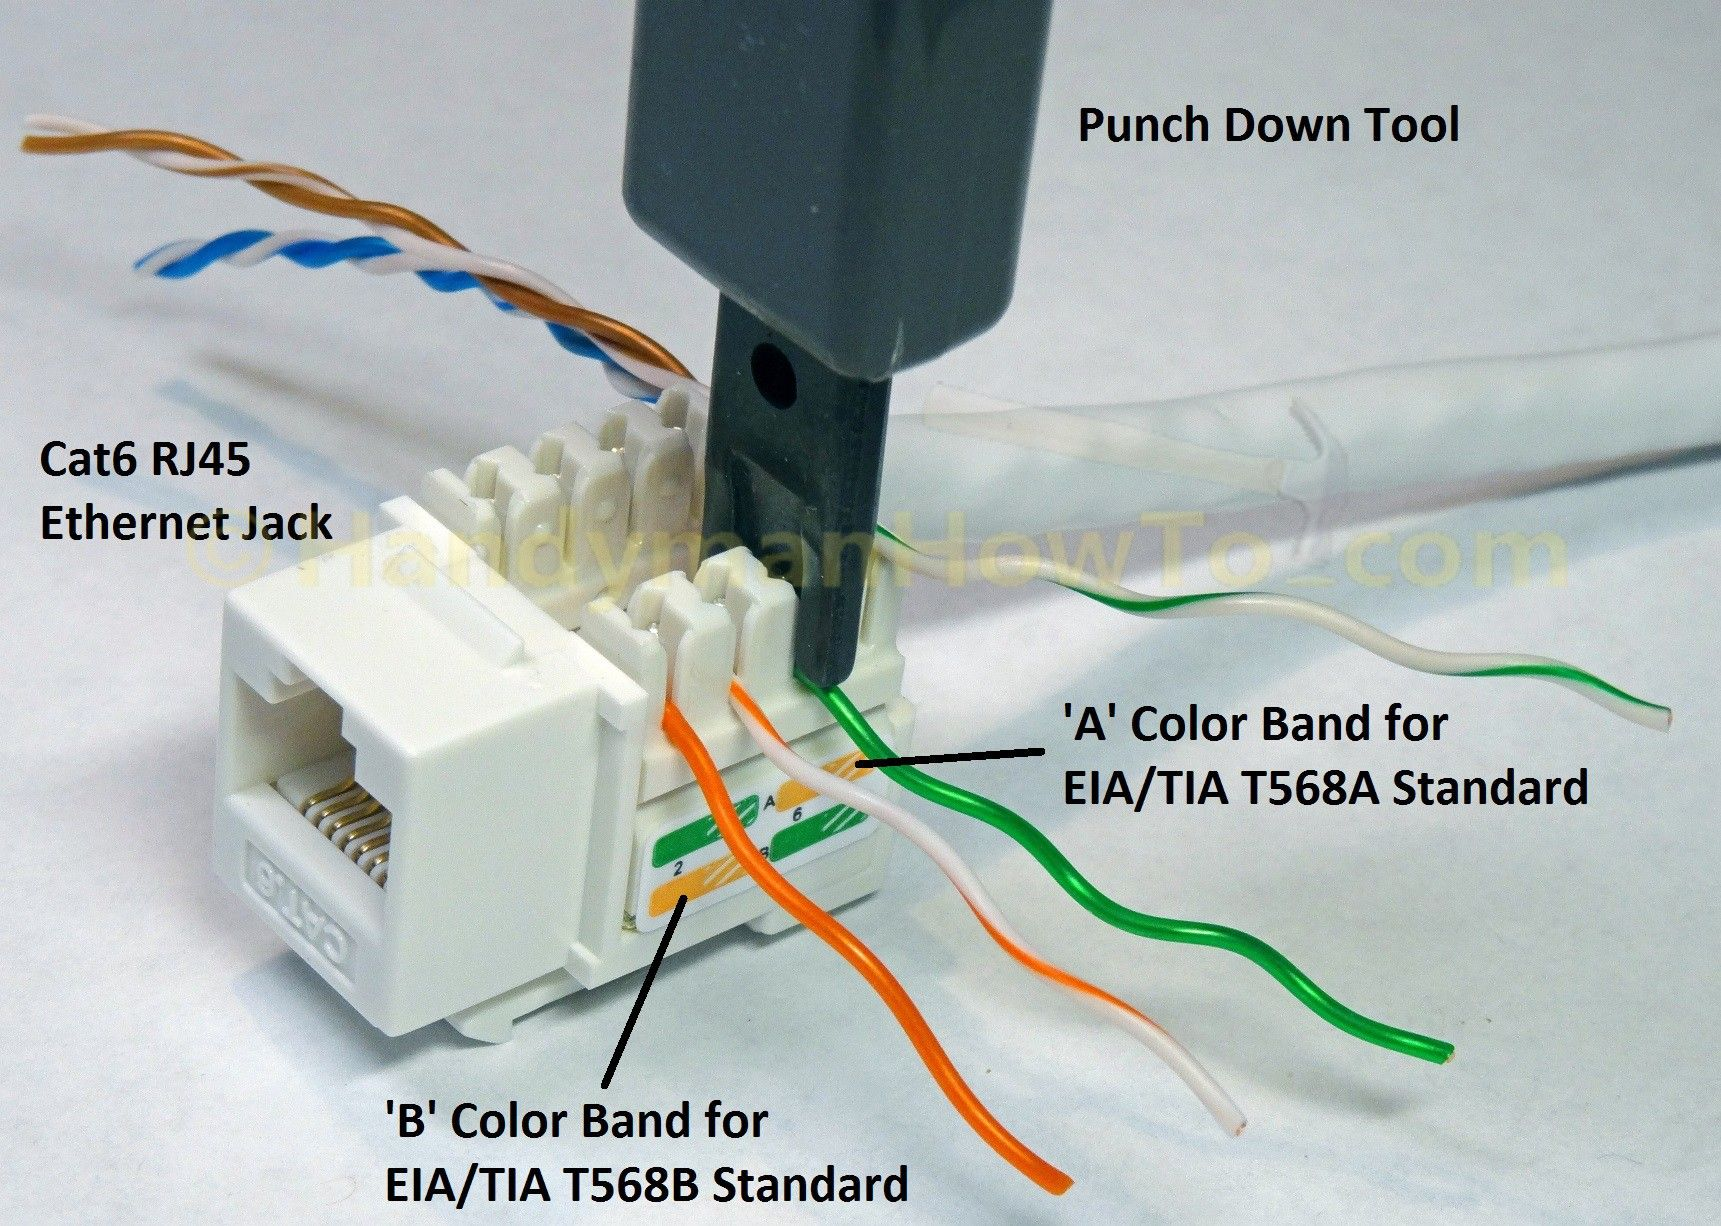 power point wiring diagram australia diagram Phone Cable Wiring Diagram Australia